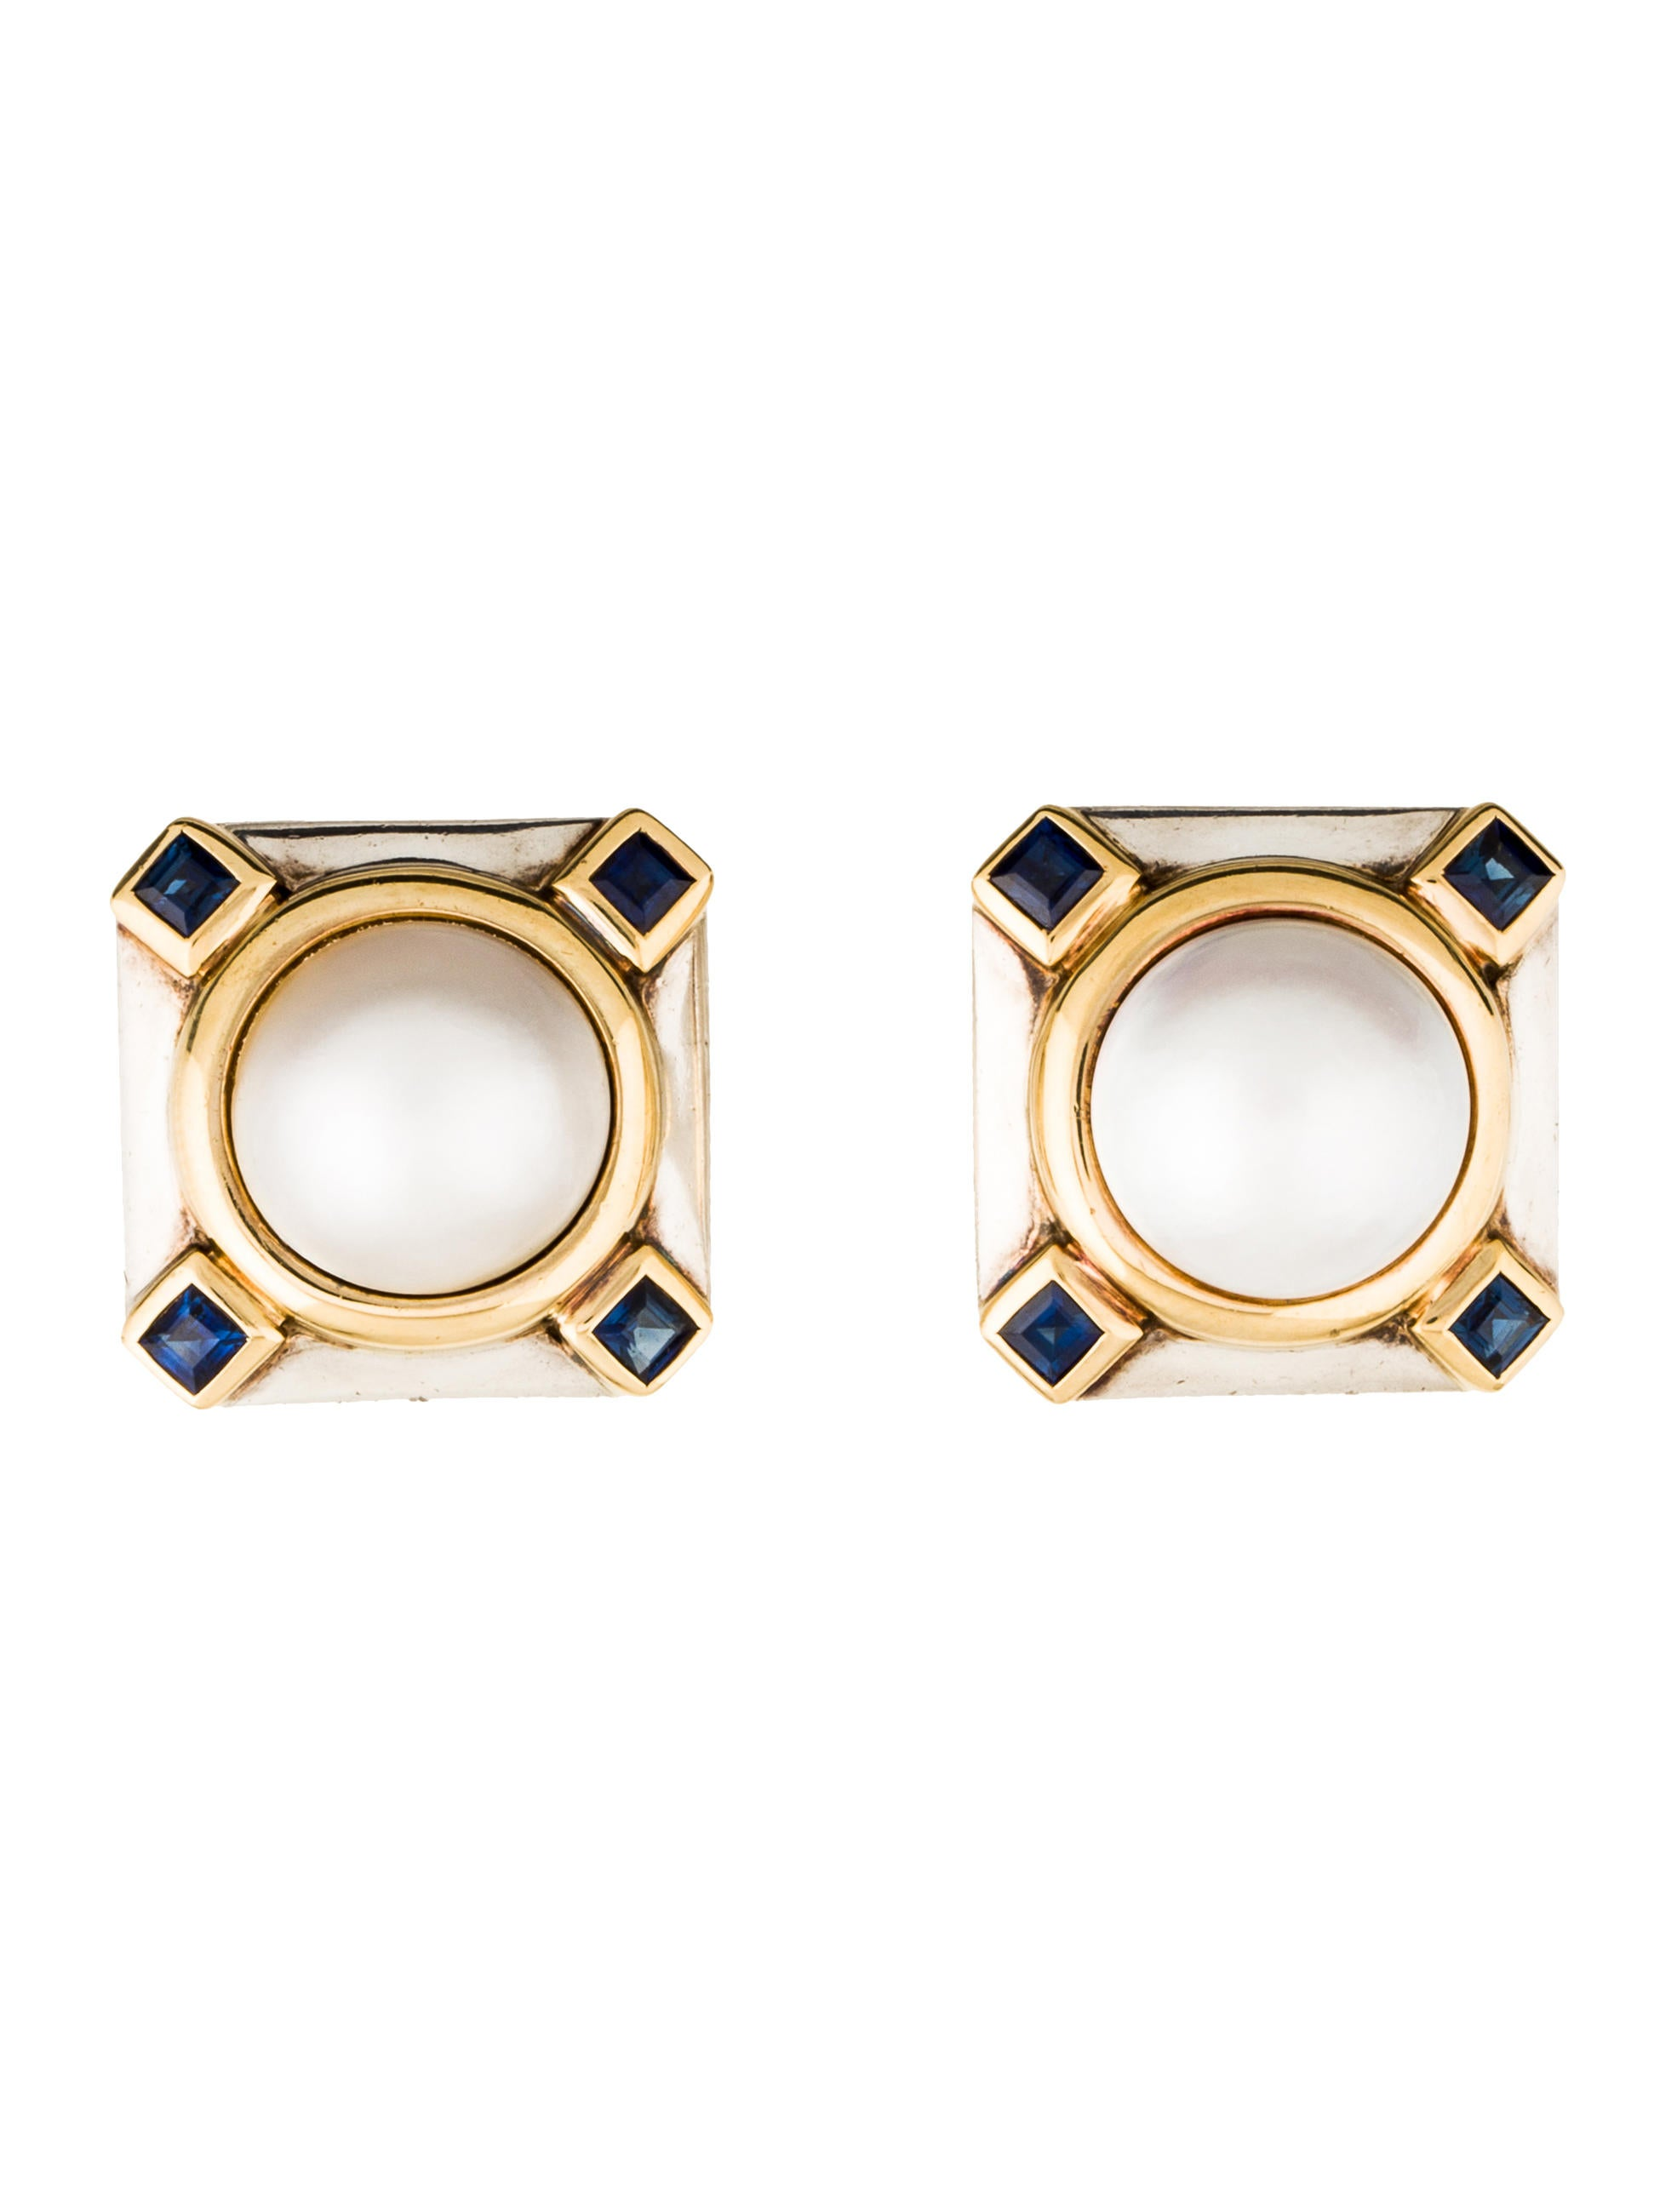 tiffany co mab pearl sapphire clip on earrings. Black Bedroom Furniture Sets. Home Design Ideas